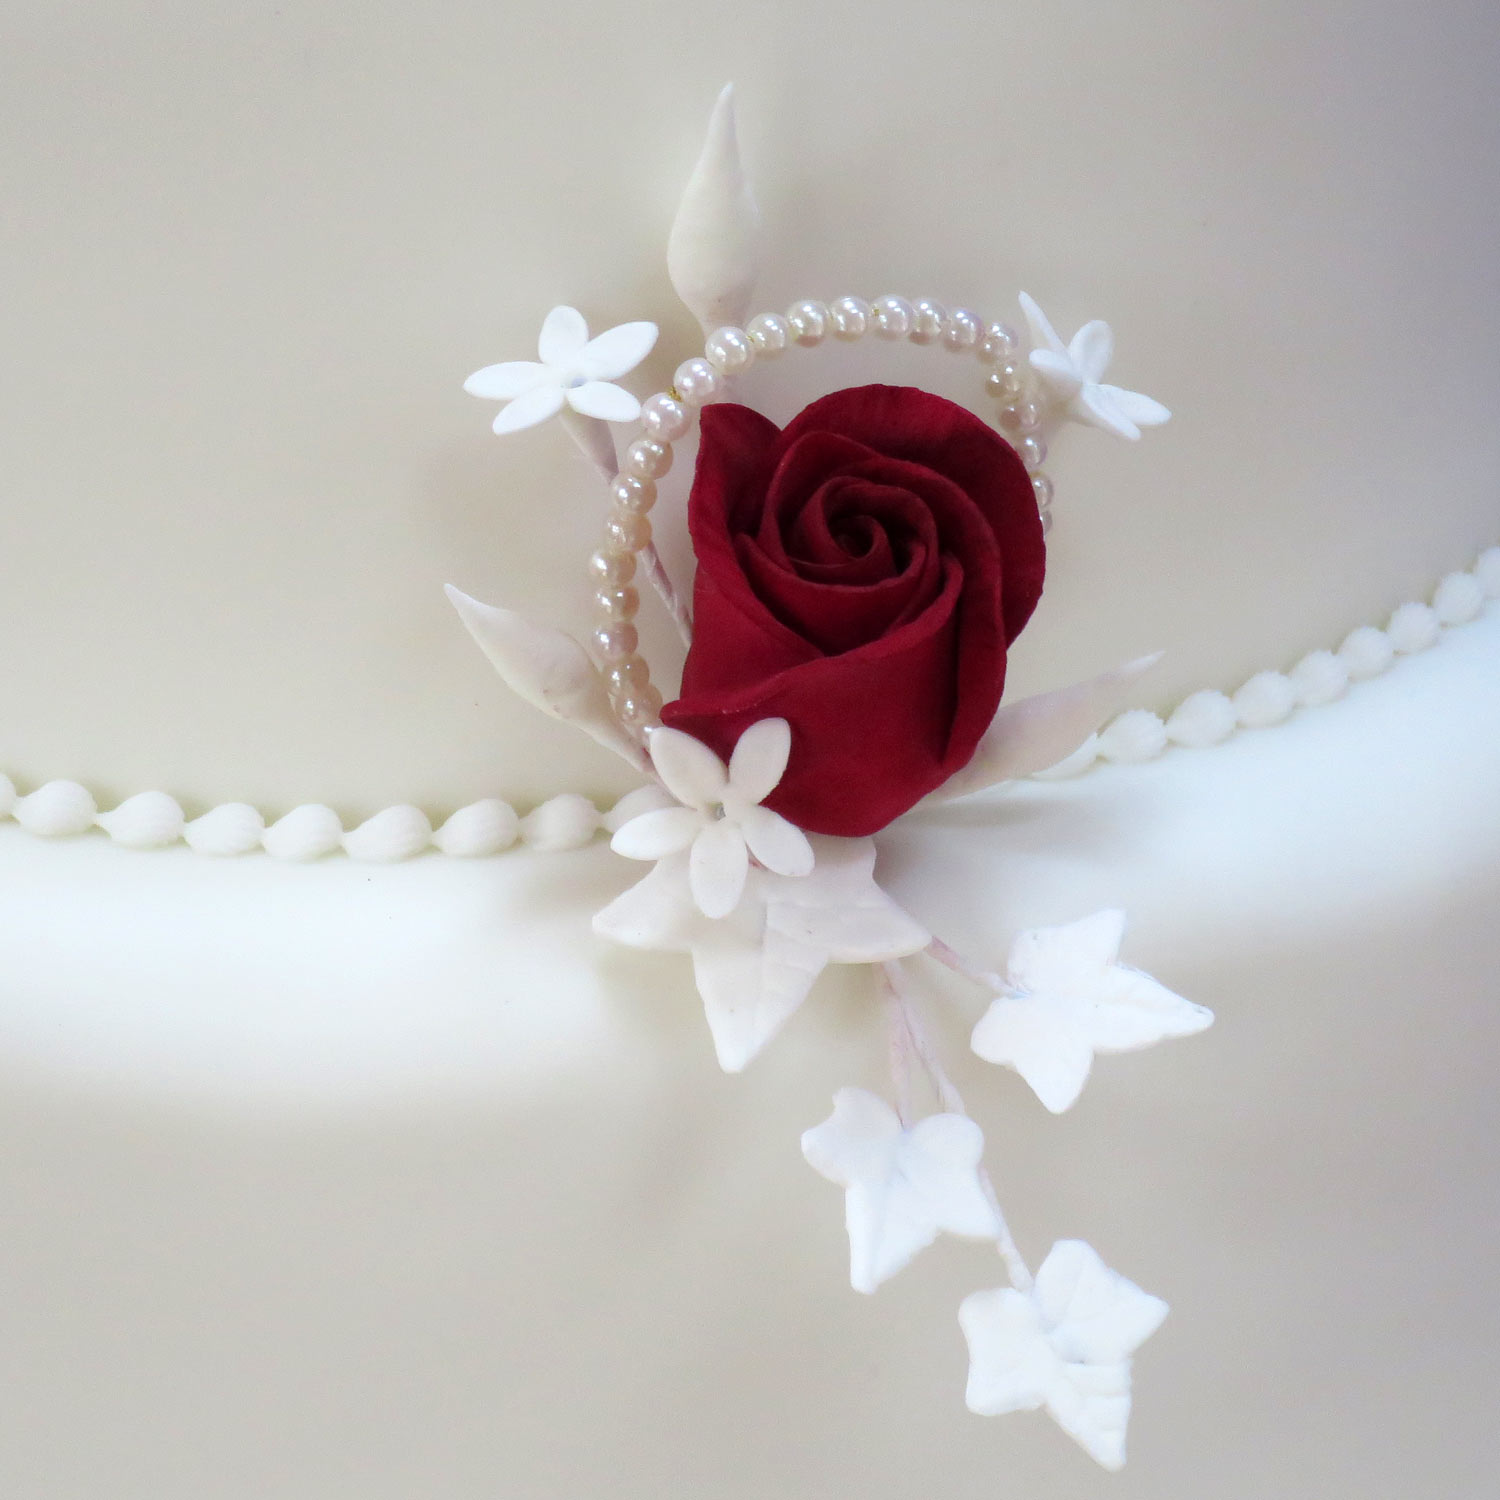 Burgundy sugar rose with jasmine, ivy and pearls.